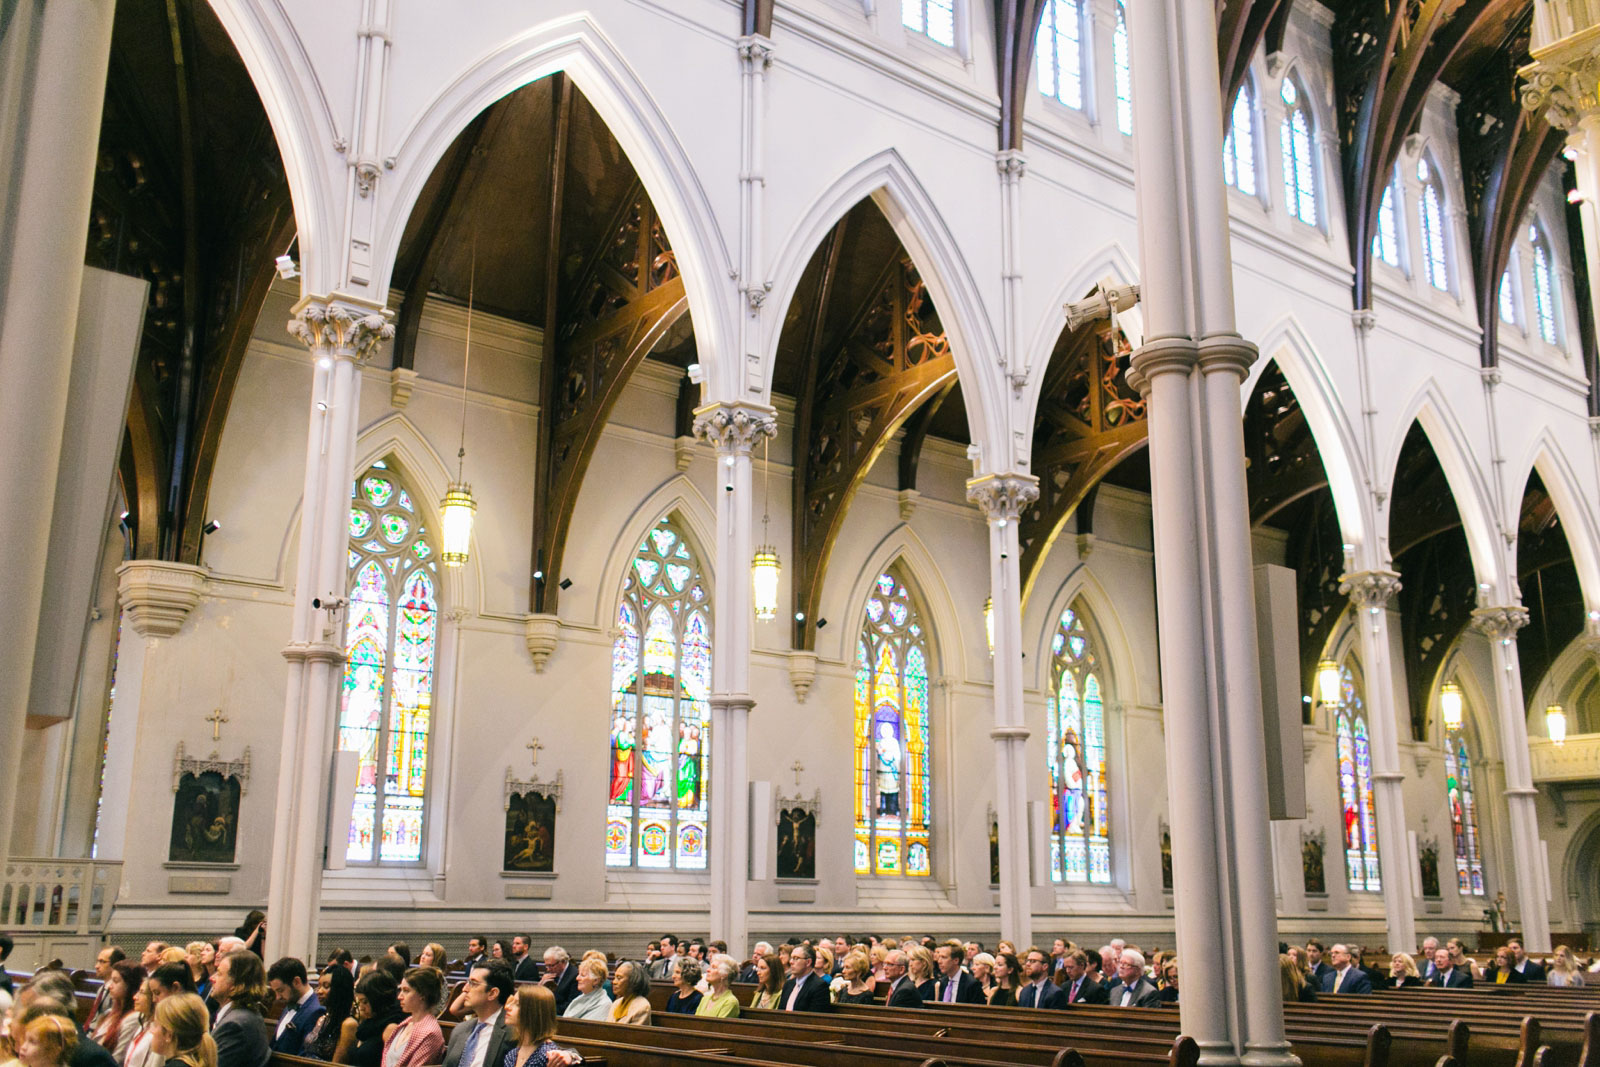 wide shot of wedding guests watching ceremony in cathedral with carved pillars and stained glass